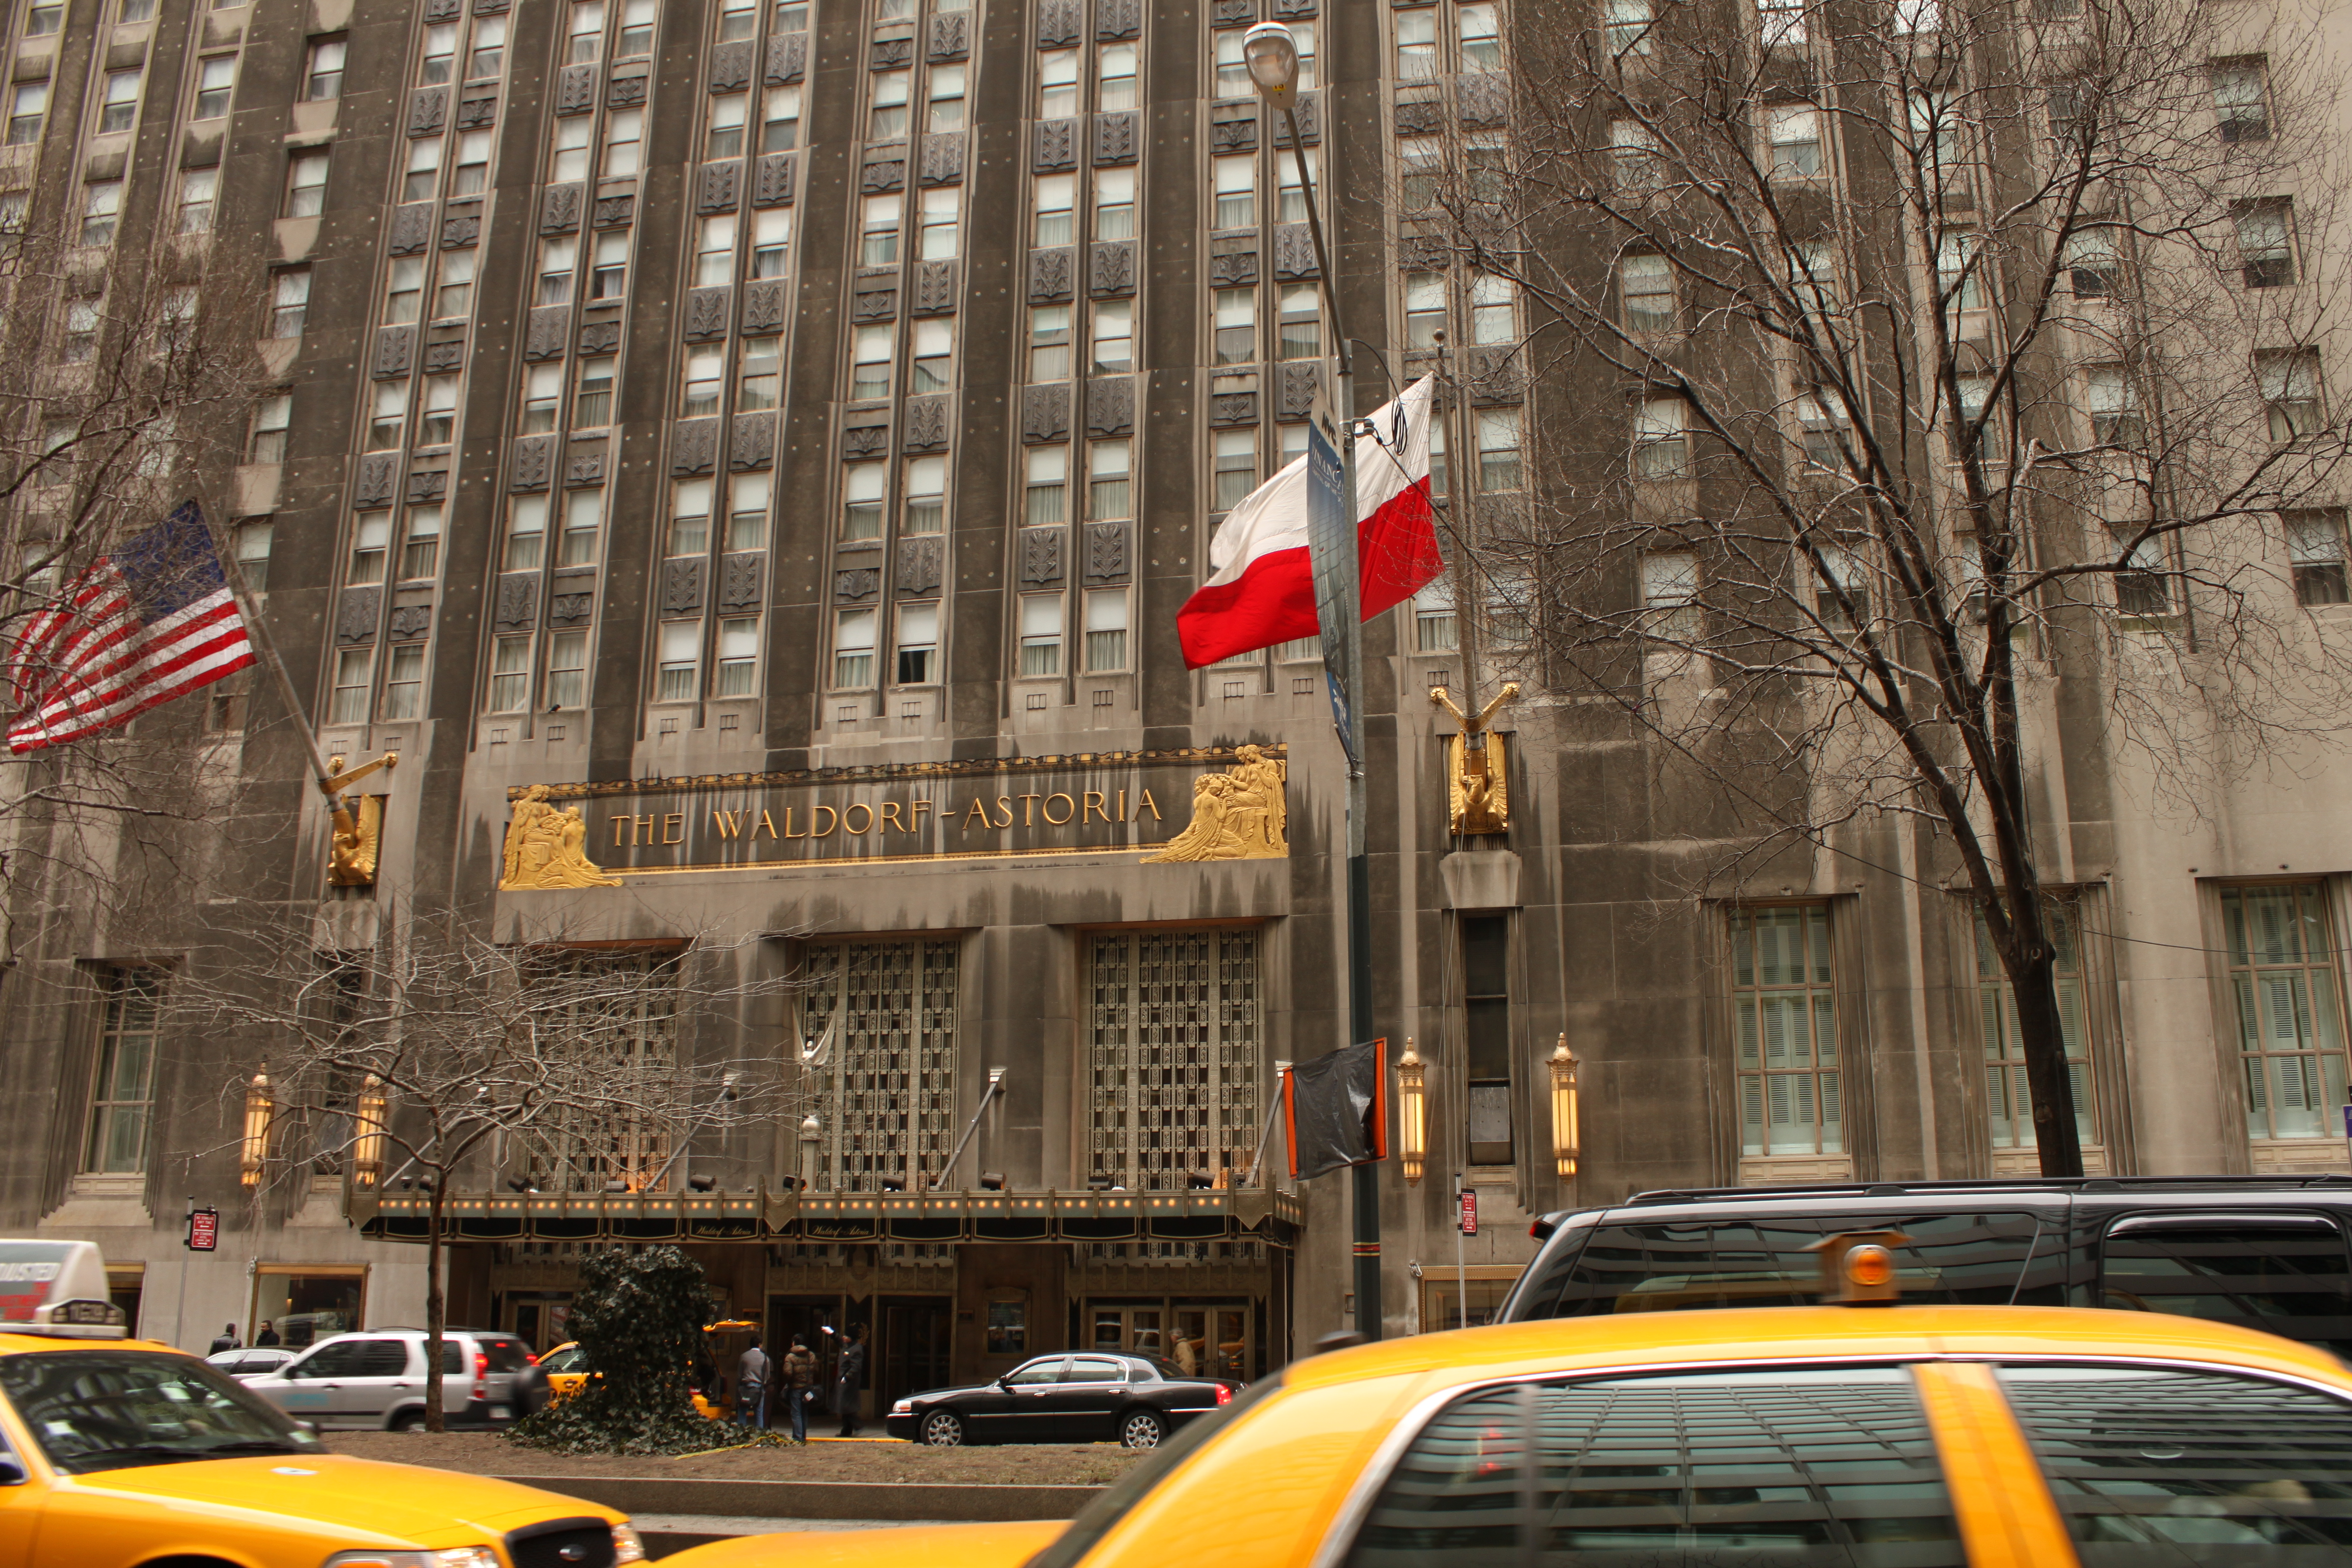 Nyc Waldorf Astoria Bed Bugs